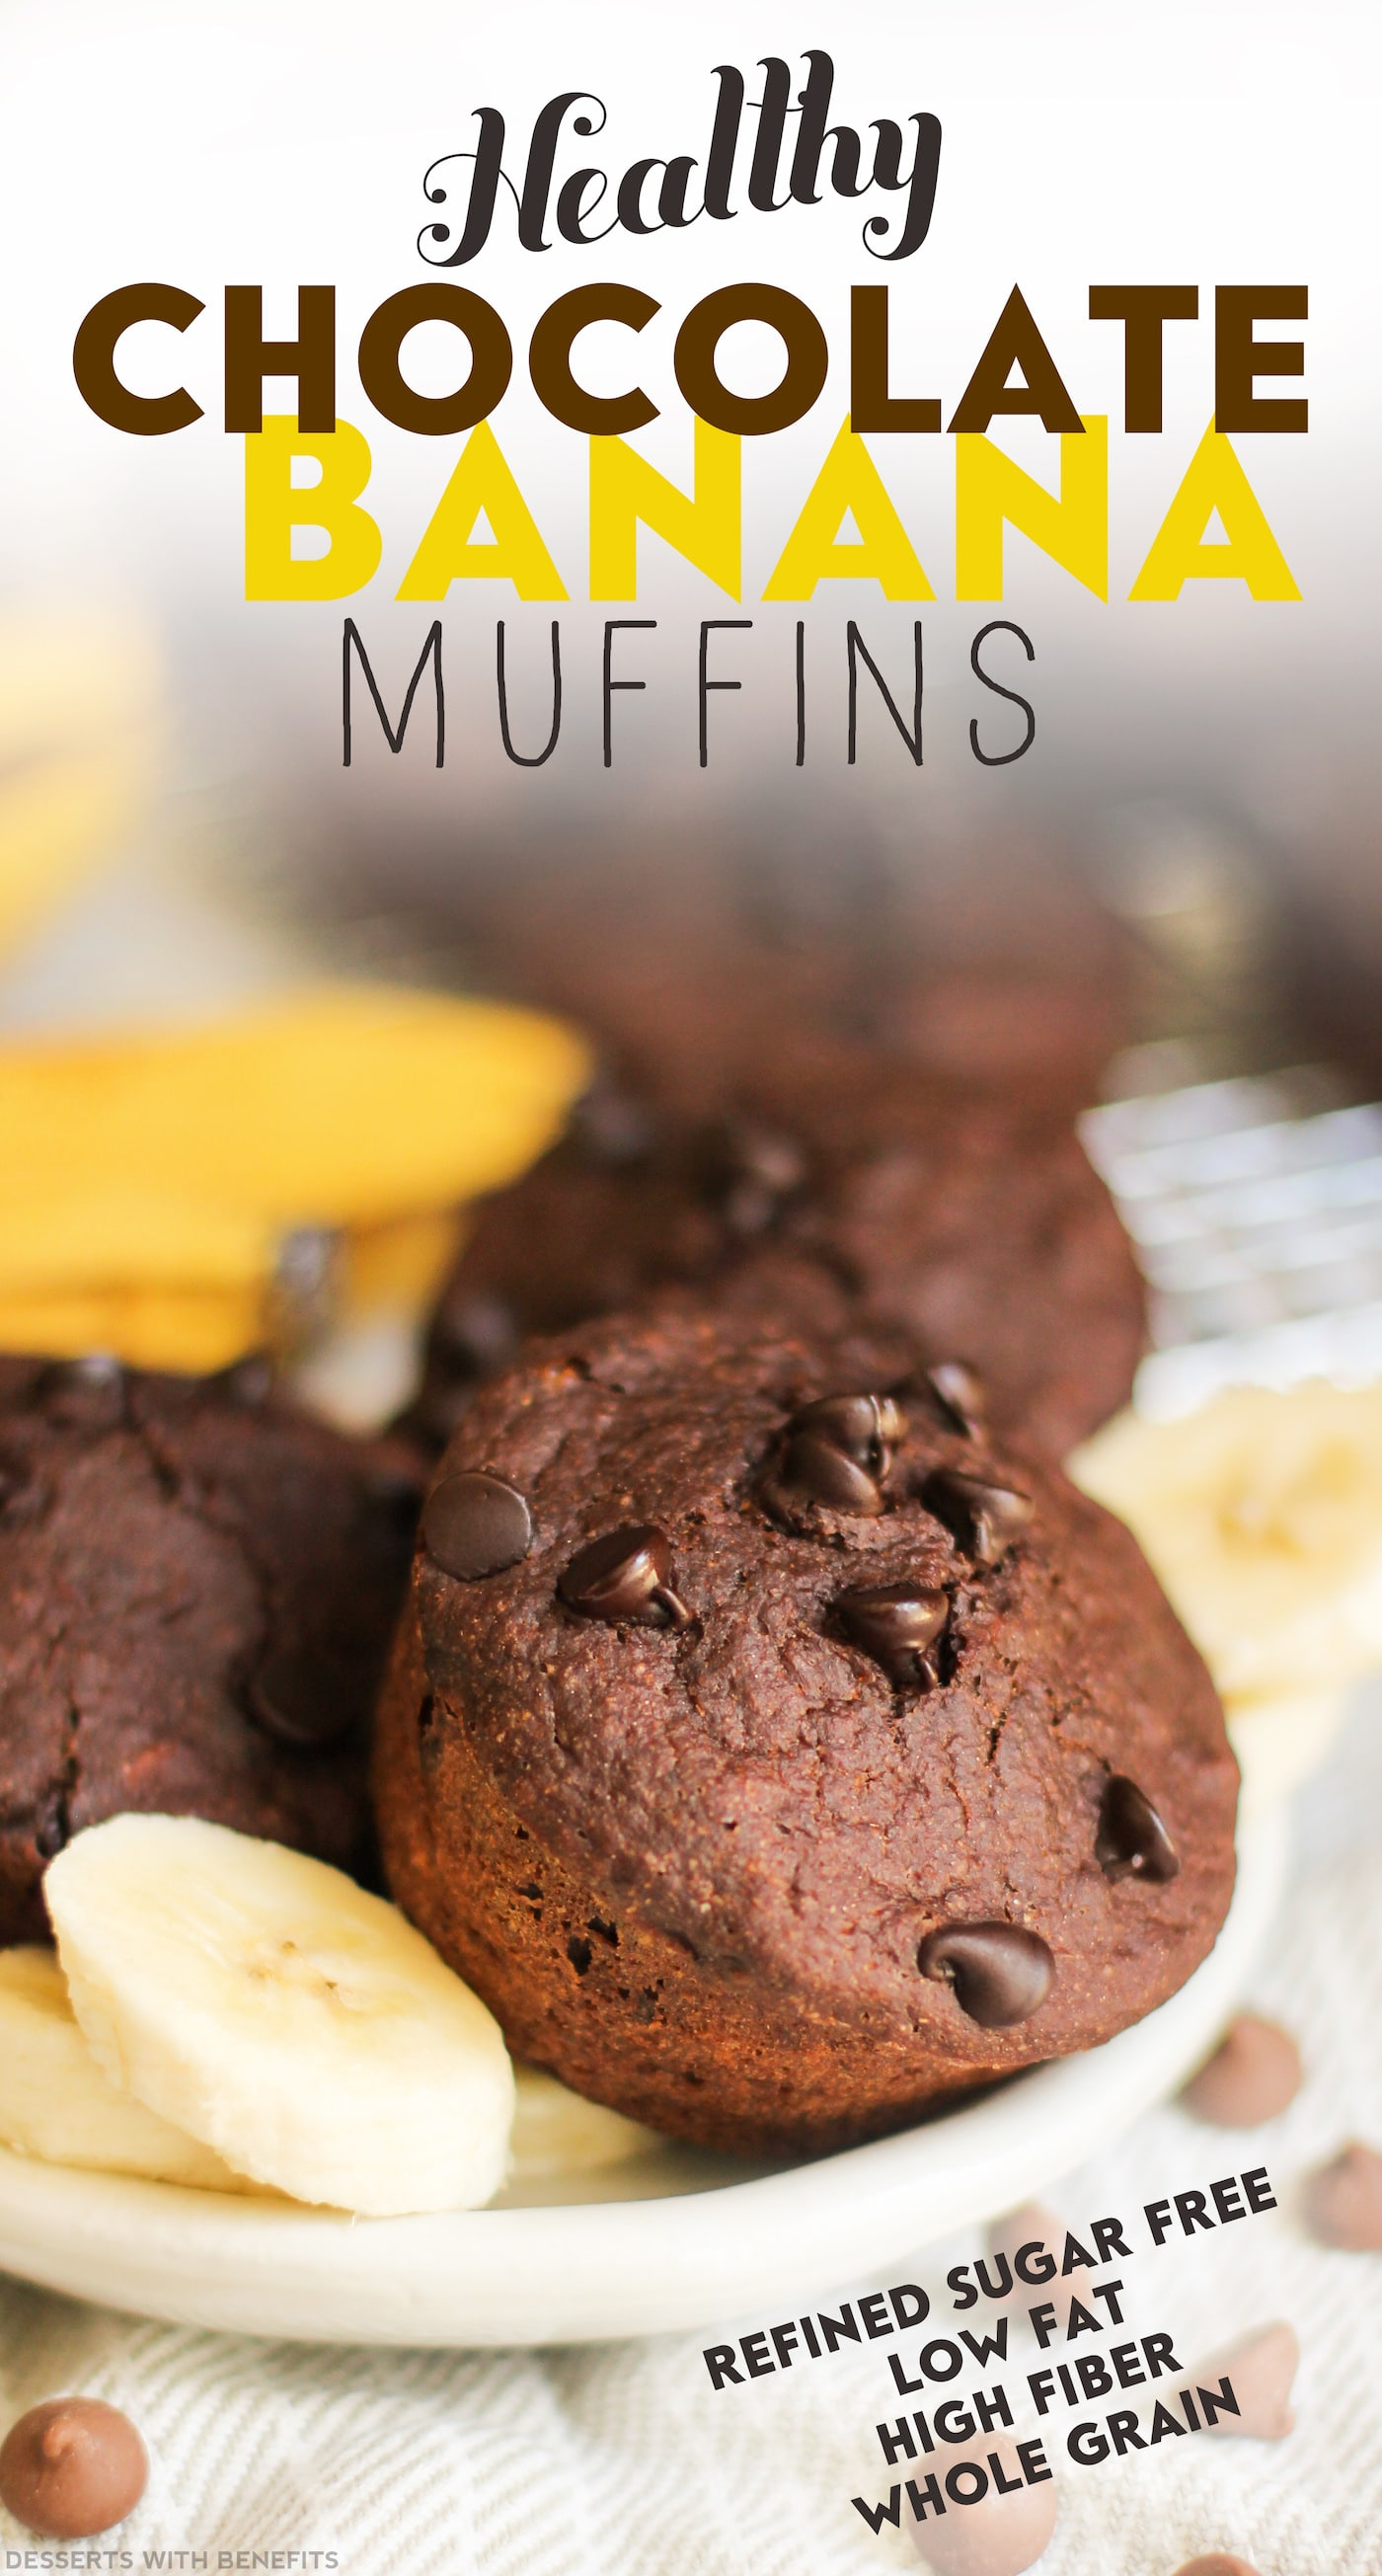 Healthy Chocolate Banana Muffins (refined sugar free, low fat, high fiber) - Healthy Dessert Recipes at Desserts with Benefits